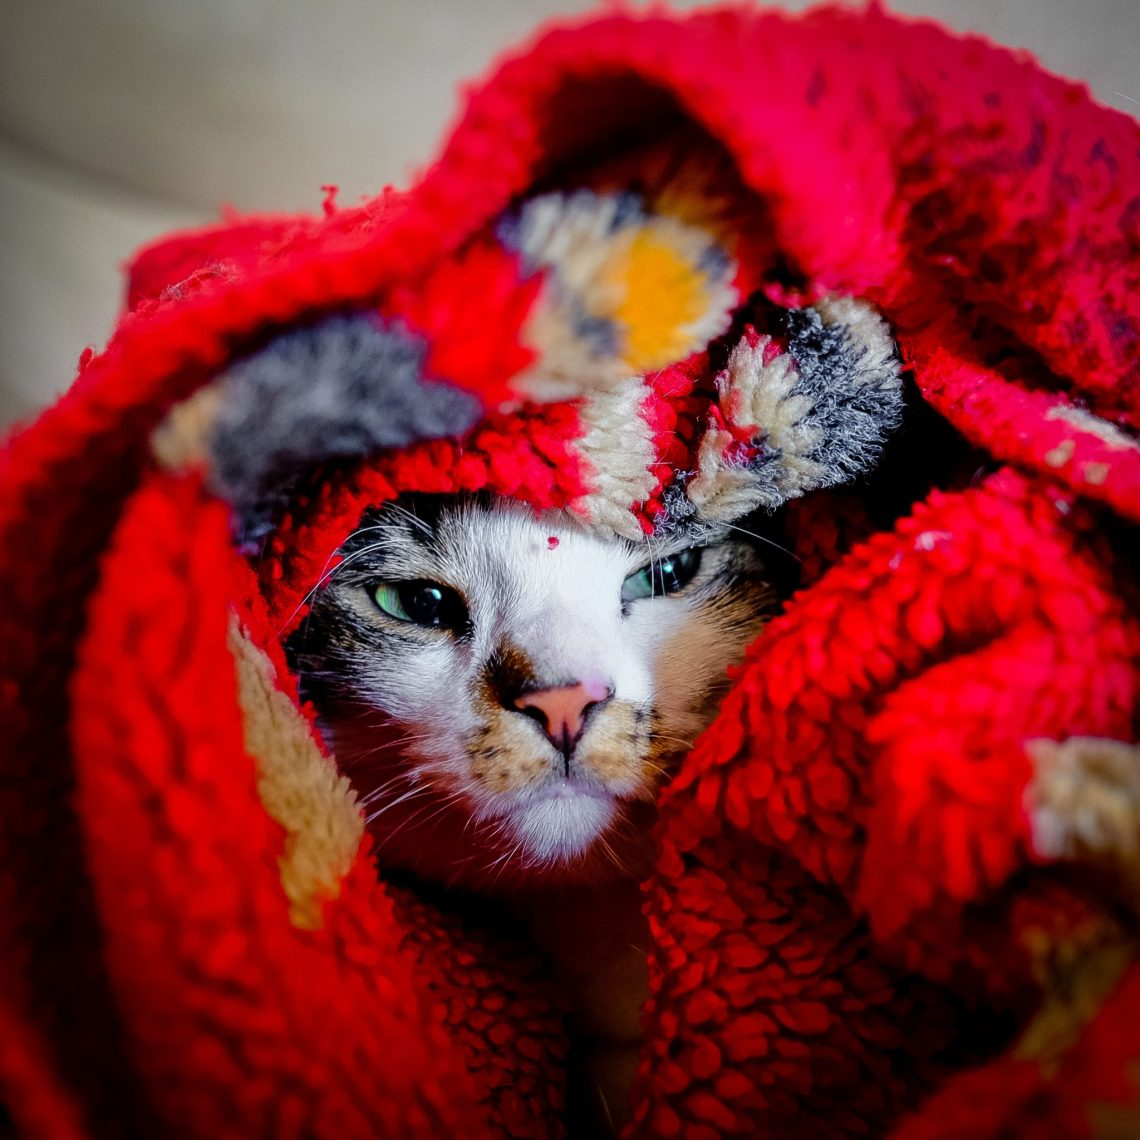 cat face snuggled in a red, patterned blanket